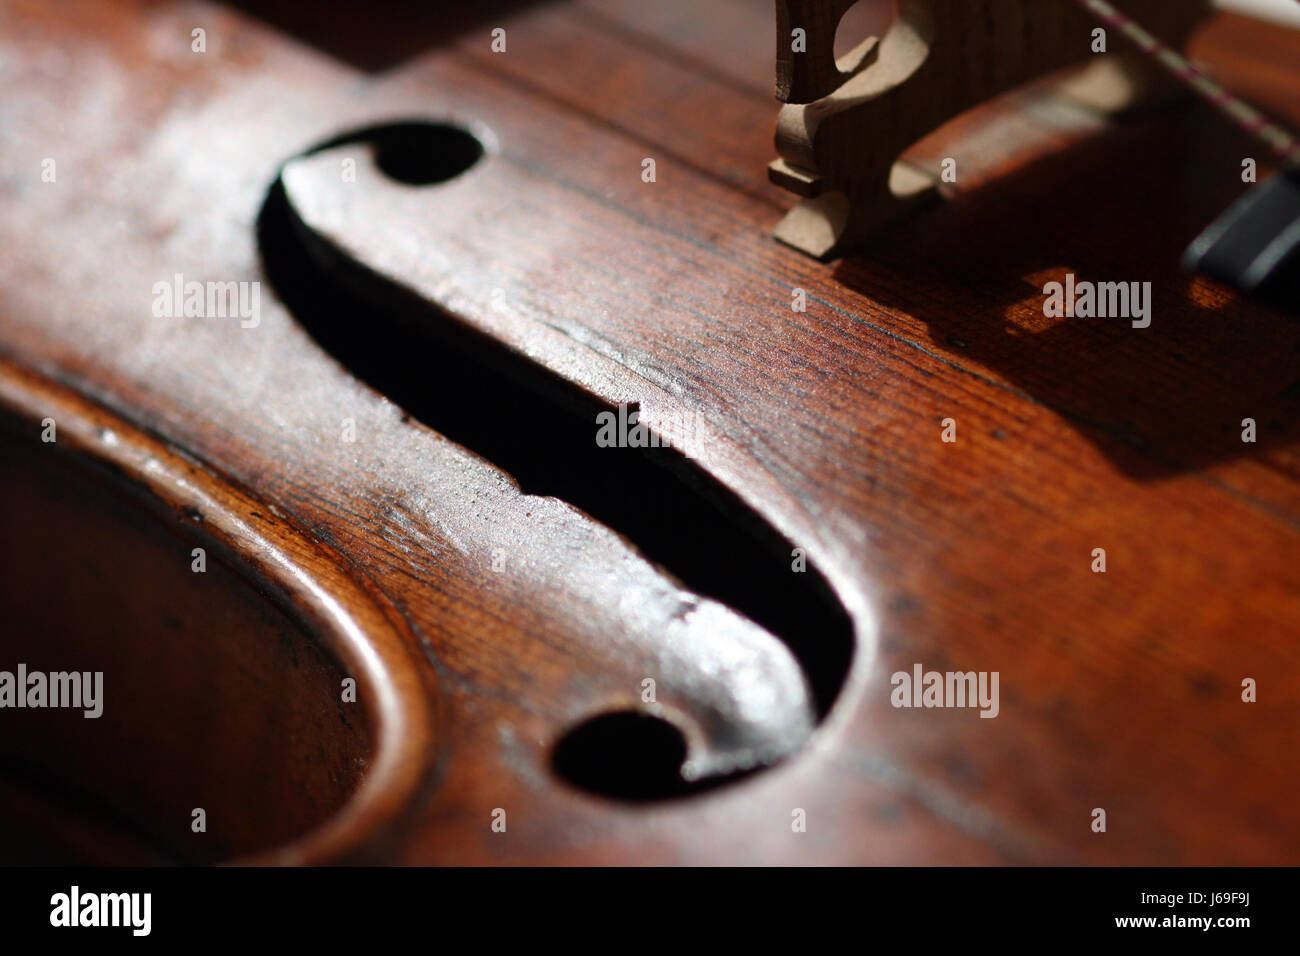 music strings violin bowed instrument notes treble clef measure instrument - Stock Image